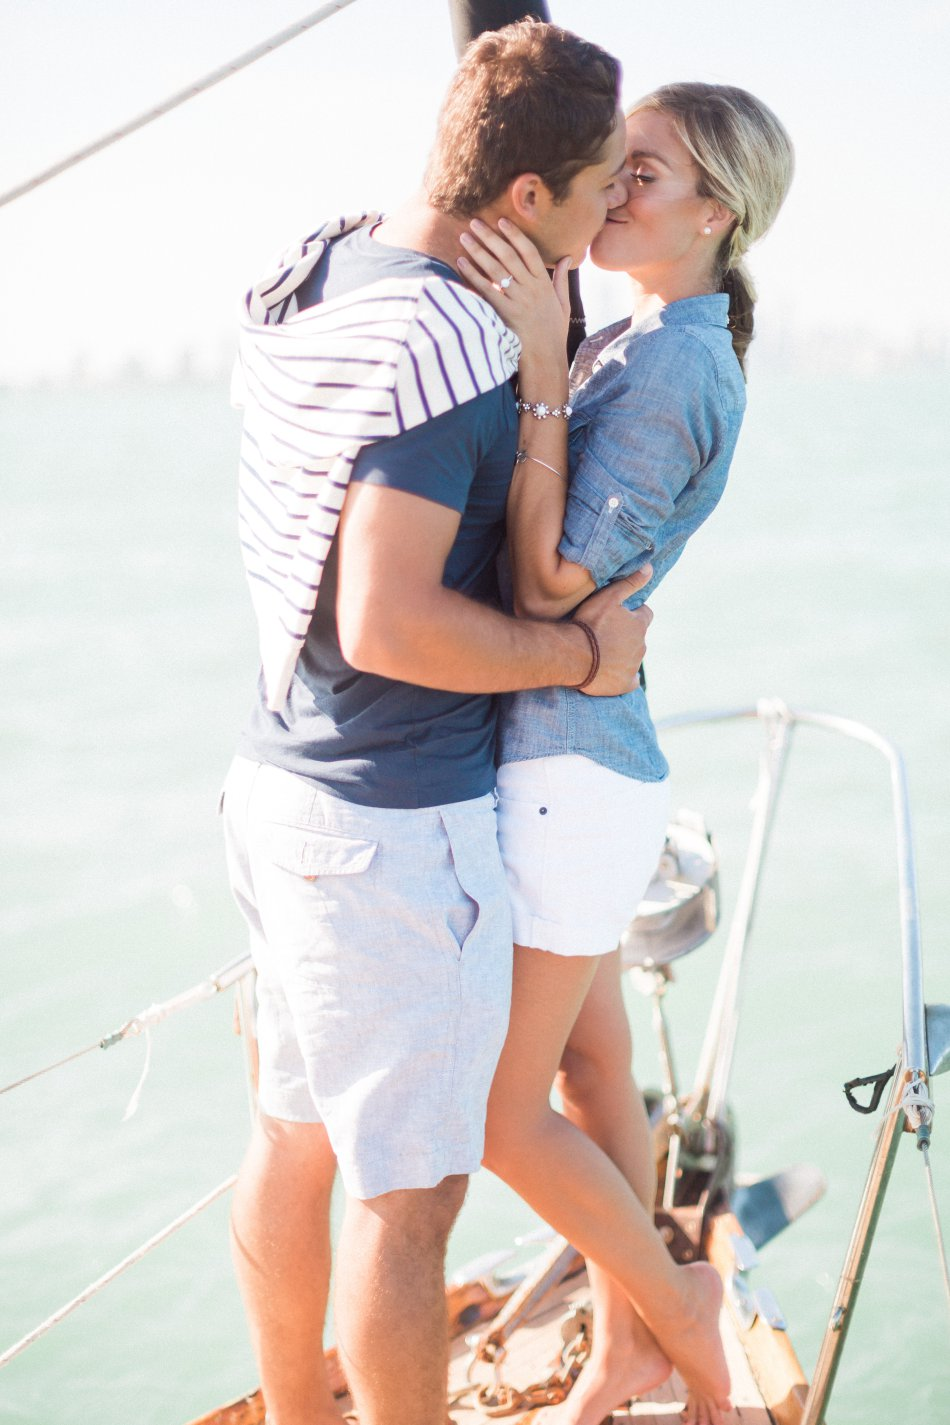 naples-luxury-sailing-engagement-photography-nautical-sailboat-engagement_1069.jpg